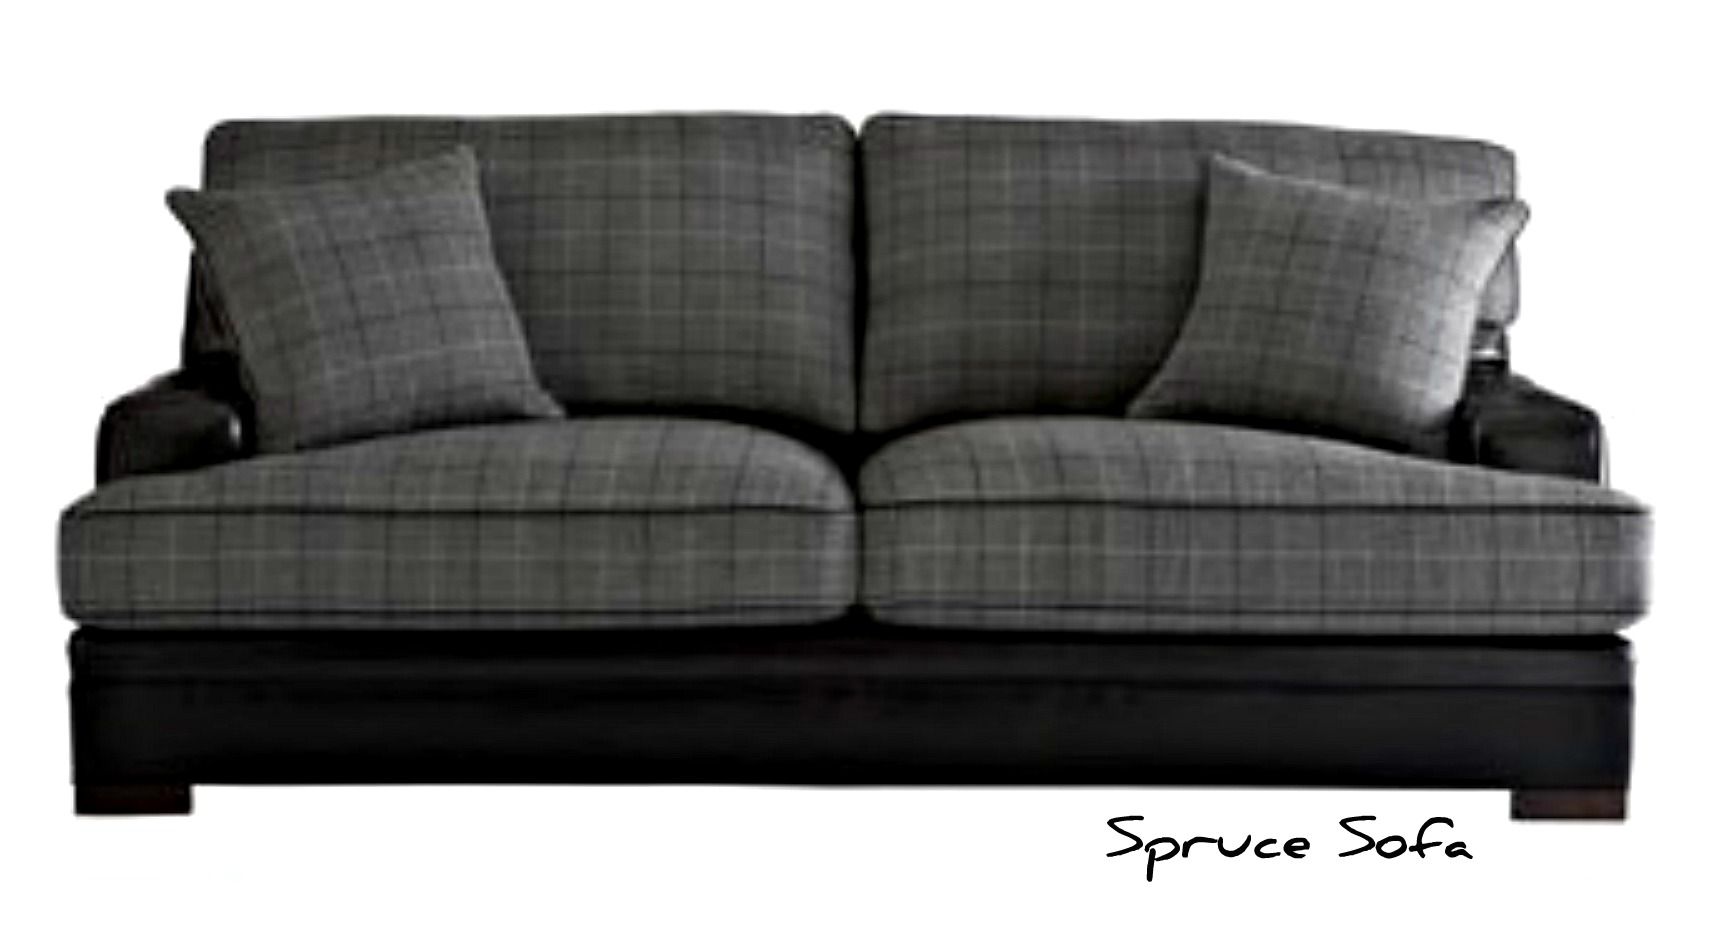 The Spruce Sofa From Horchow ...